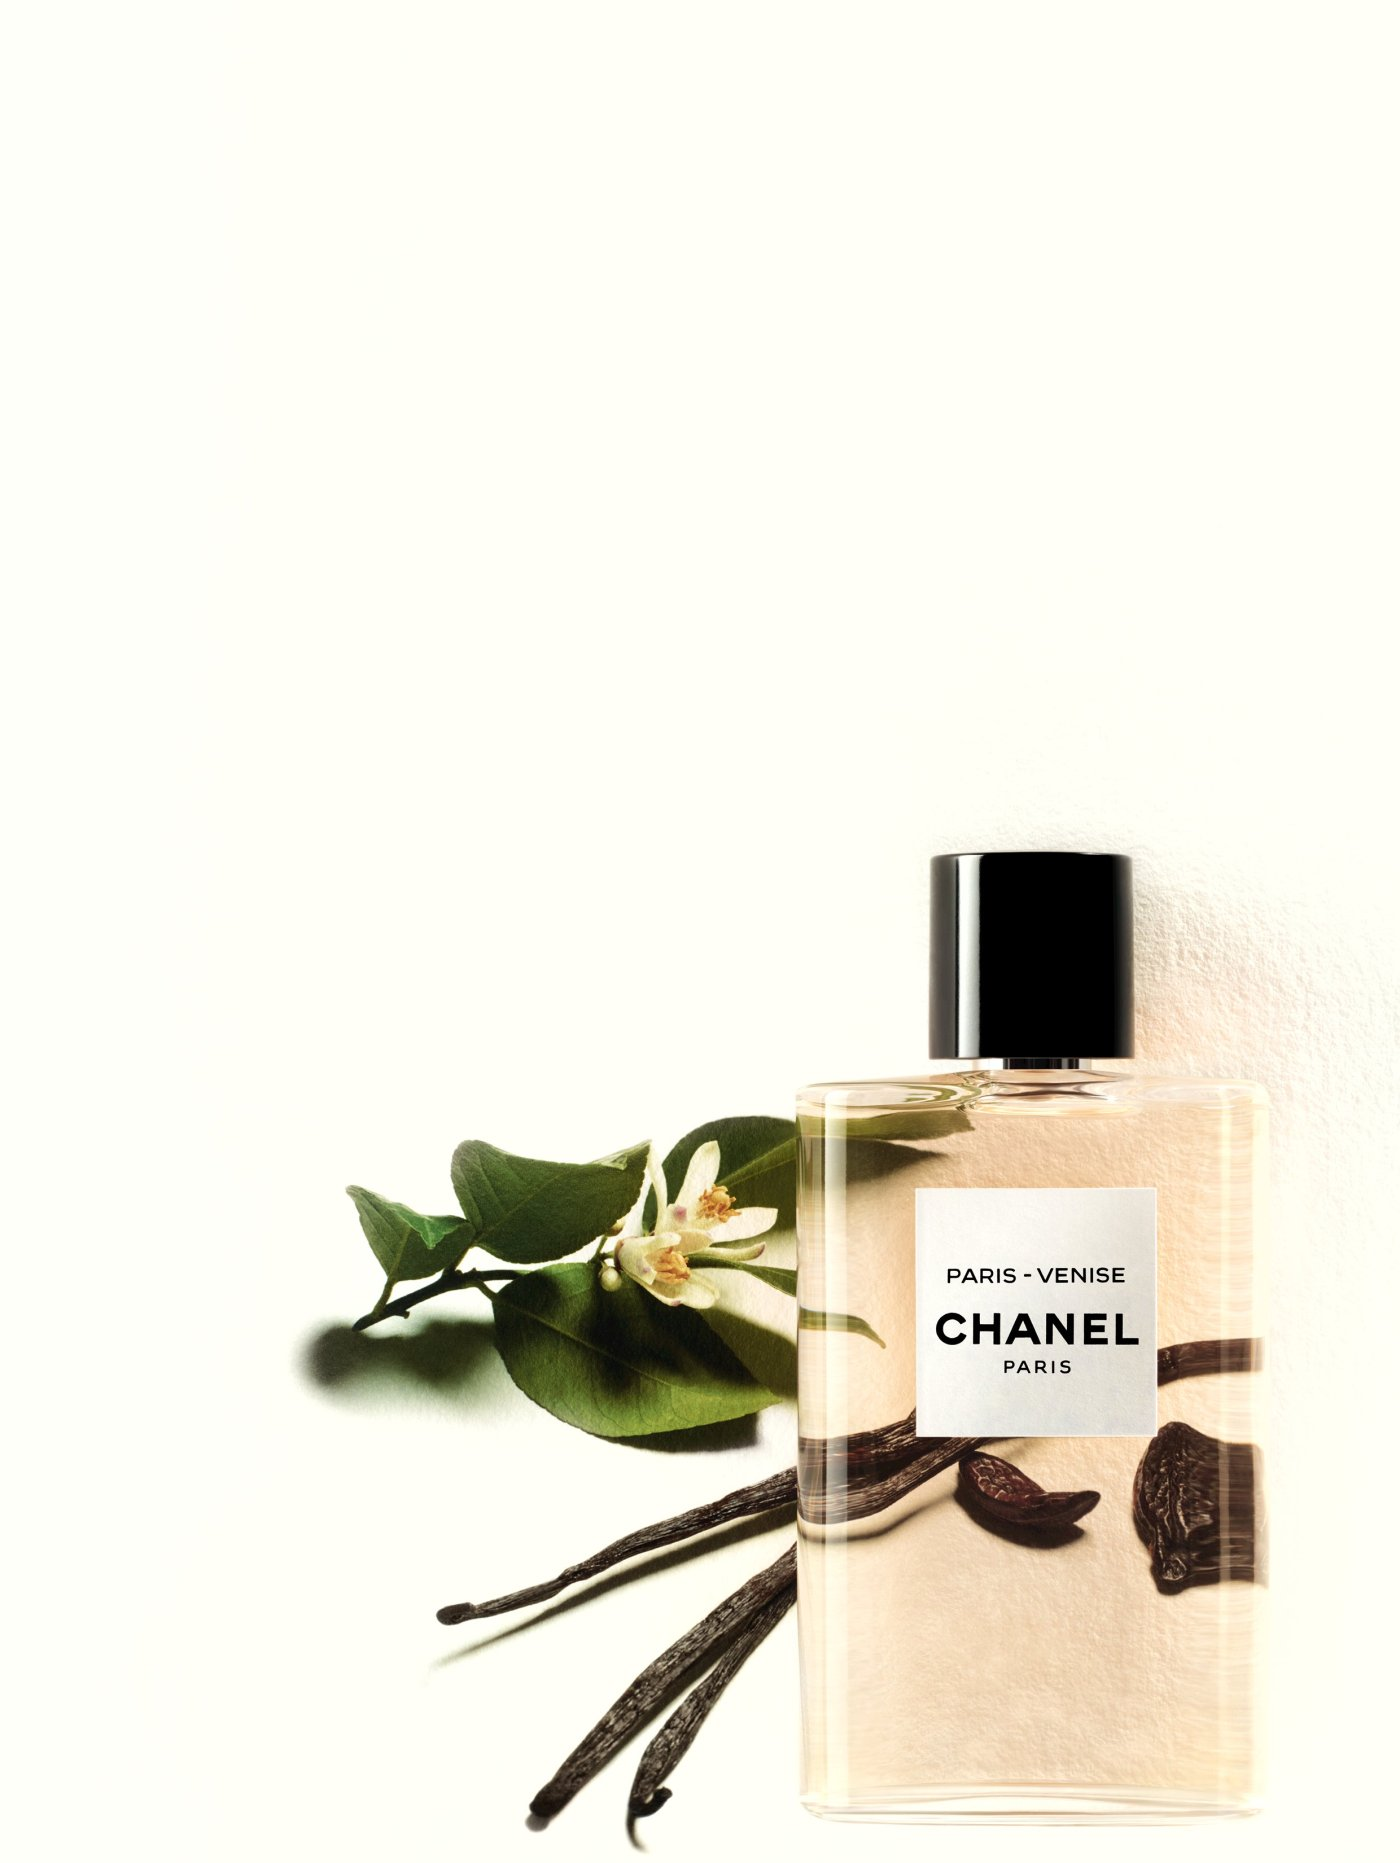 eau-chanel-paris-venise